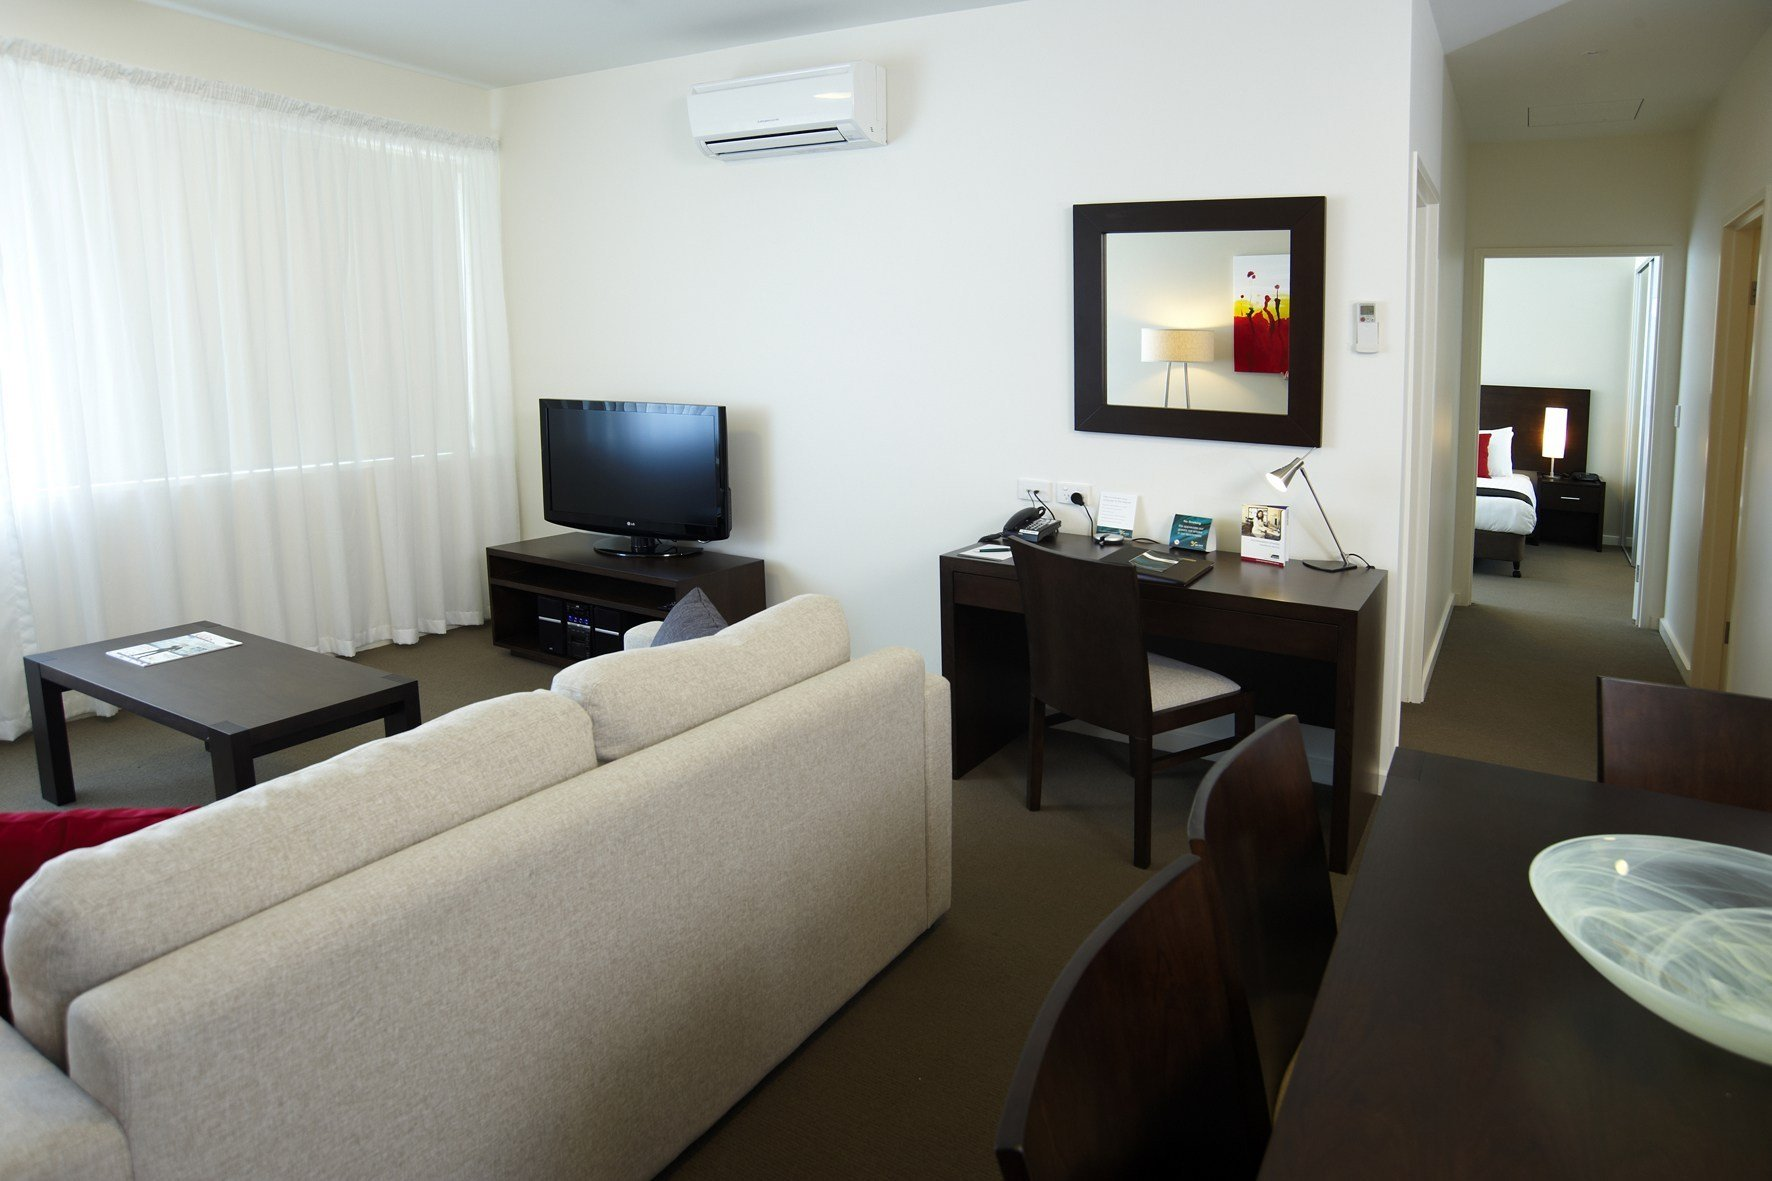 Best How To Decorate Two Room Apartment Theydesign Net Theydesign Net With Pictures